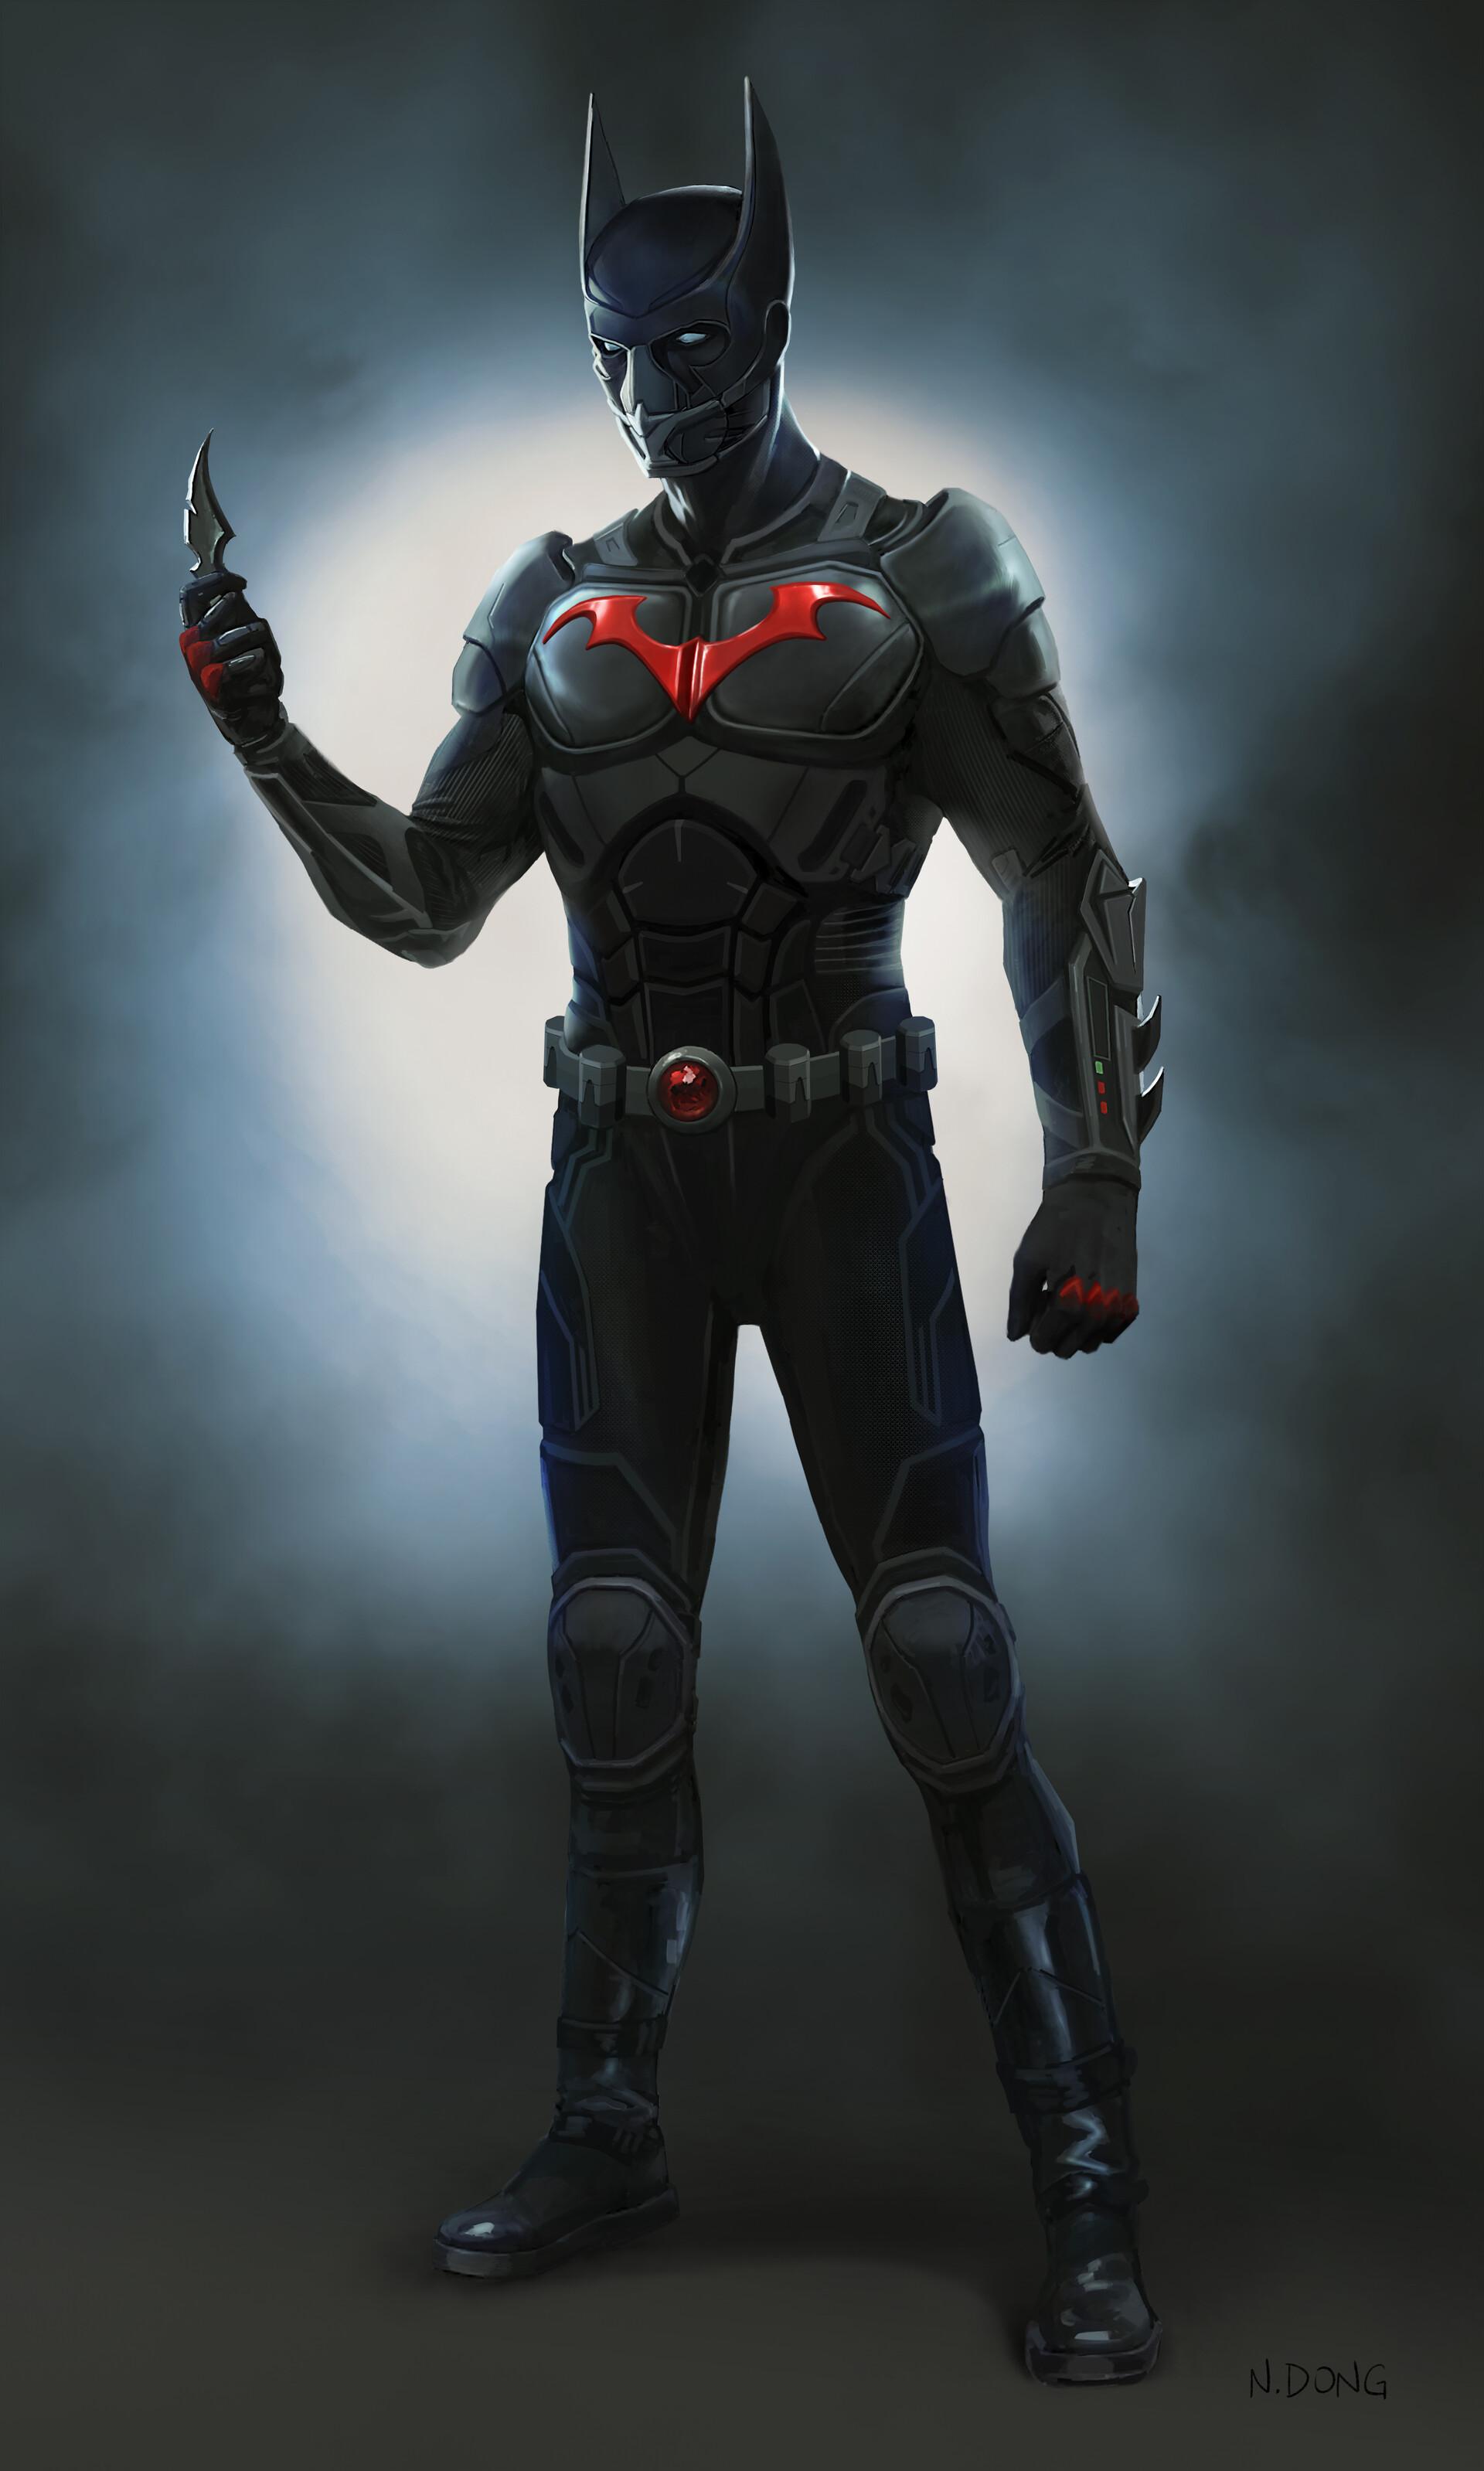 Batman Beyond character design for live action motion pictures.